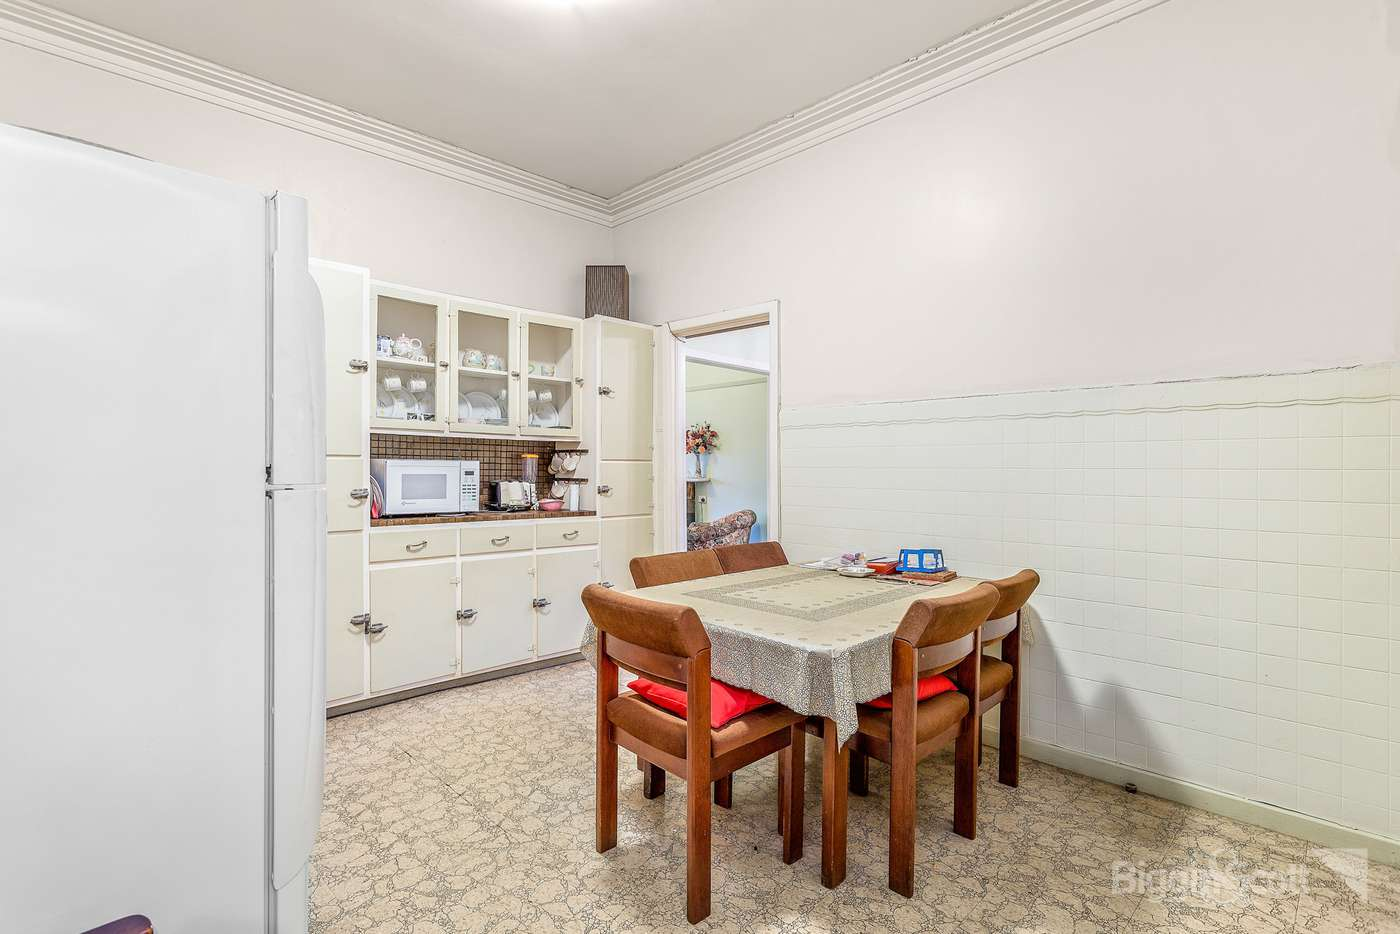 Fifth view of Homely house listing, 2A Pitt Street, West Footscray VIC 3012